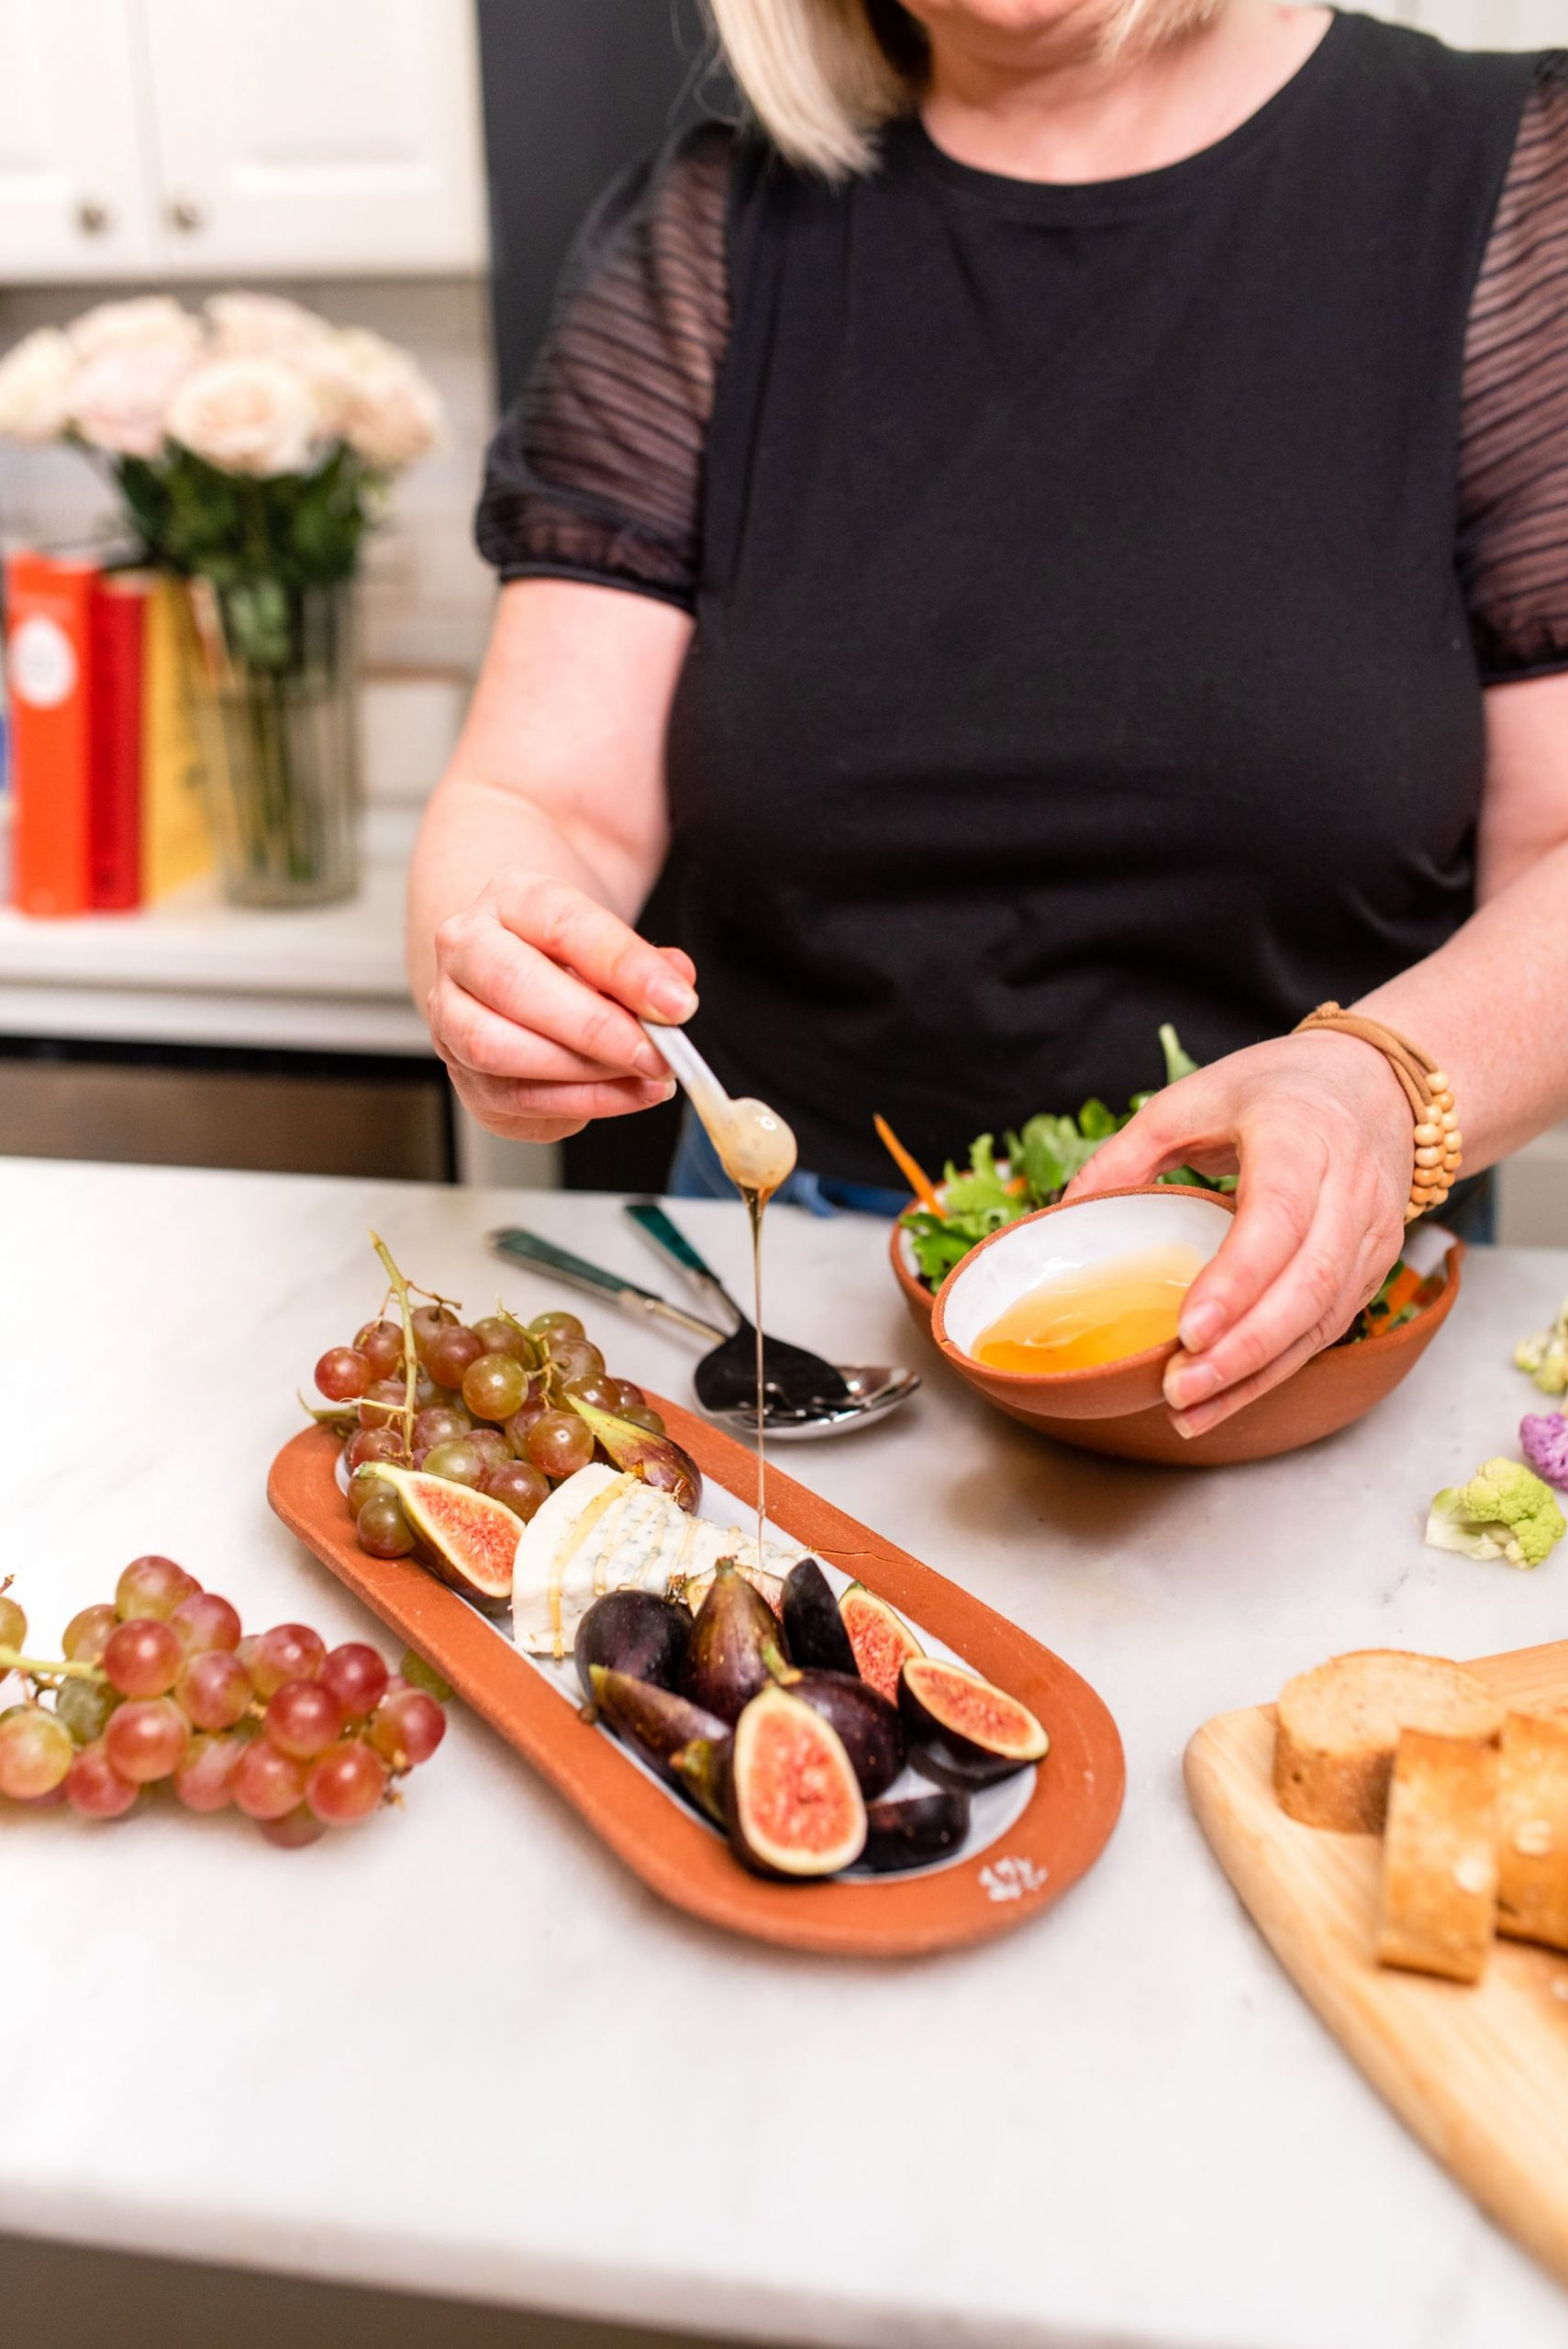 Learn the Basics of Photography - Woman drizzling honey over platter of figs, cheese, and grapes